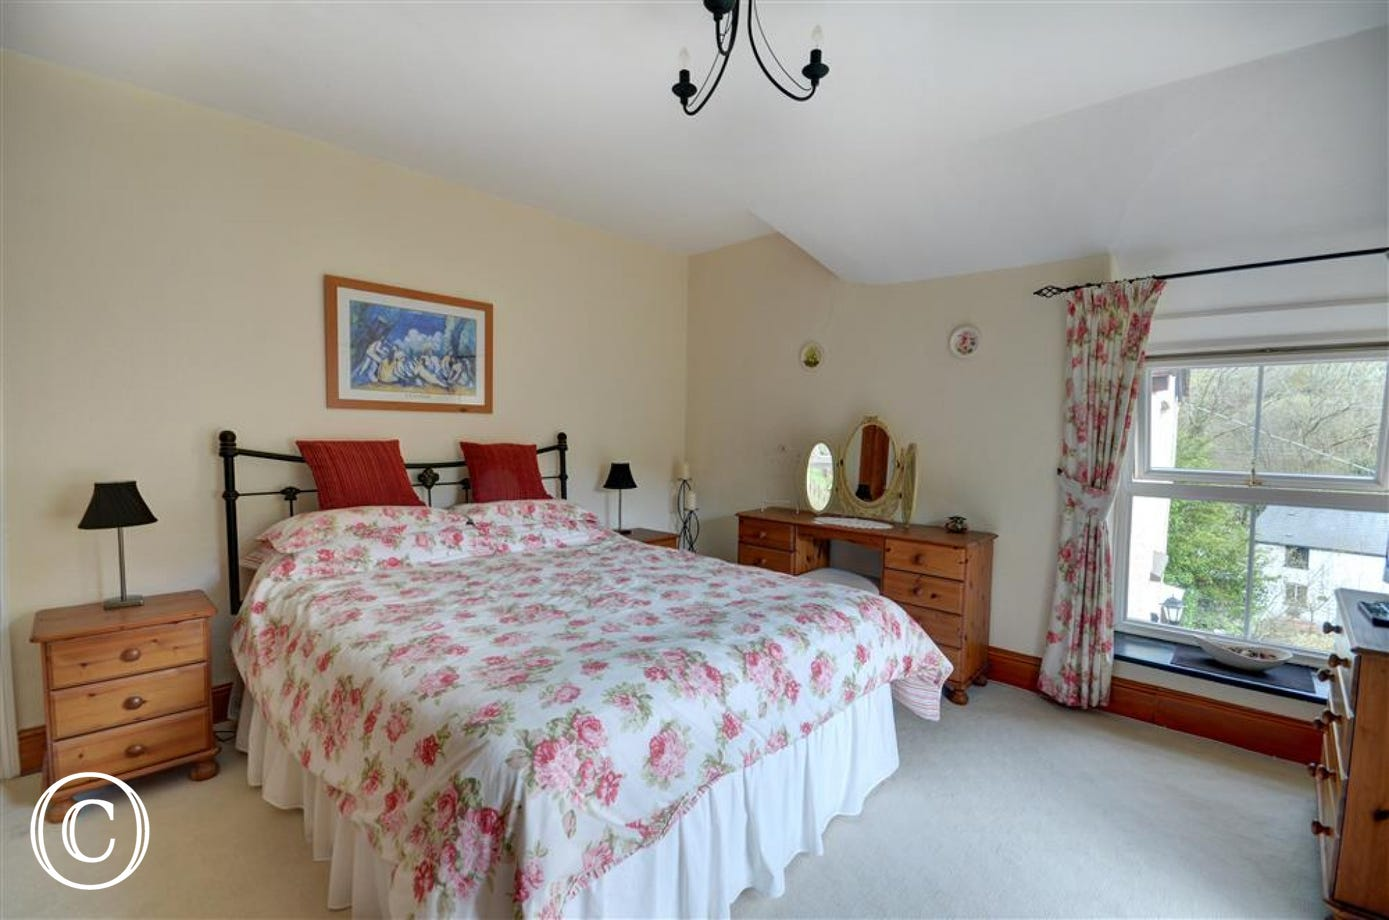 Wake up to delightful countryside views from the spacious bedroom